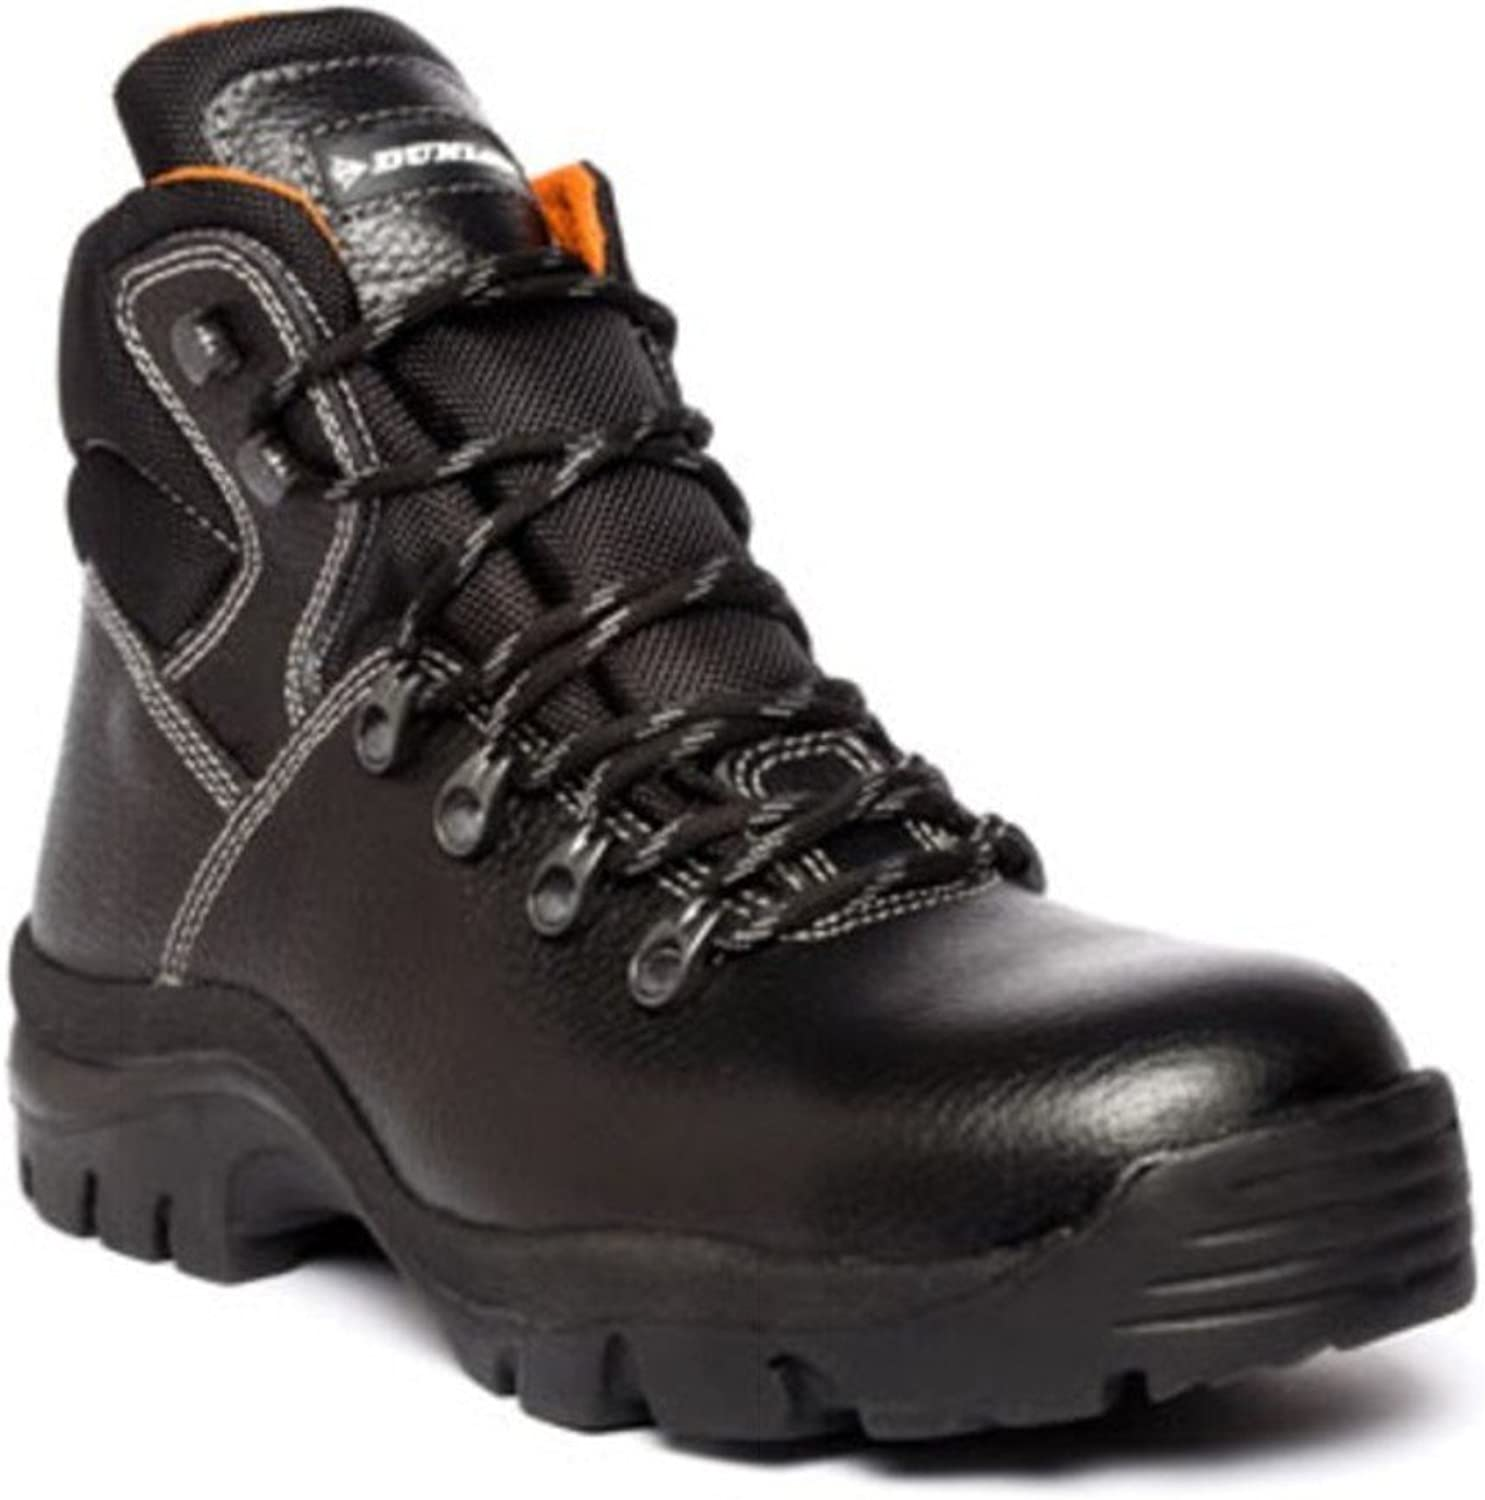 LT104 2WORK4 S3 Safety Polycarbonate Toecap Leather Boot